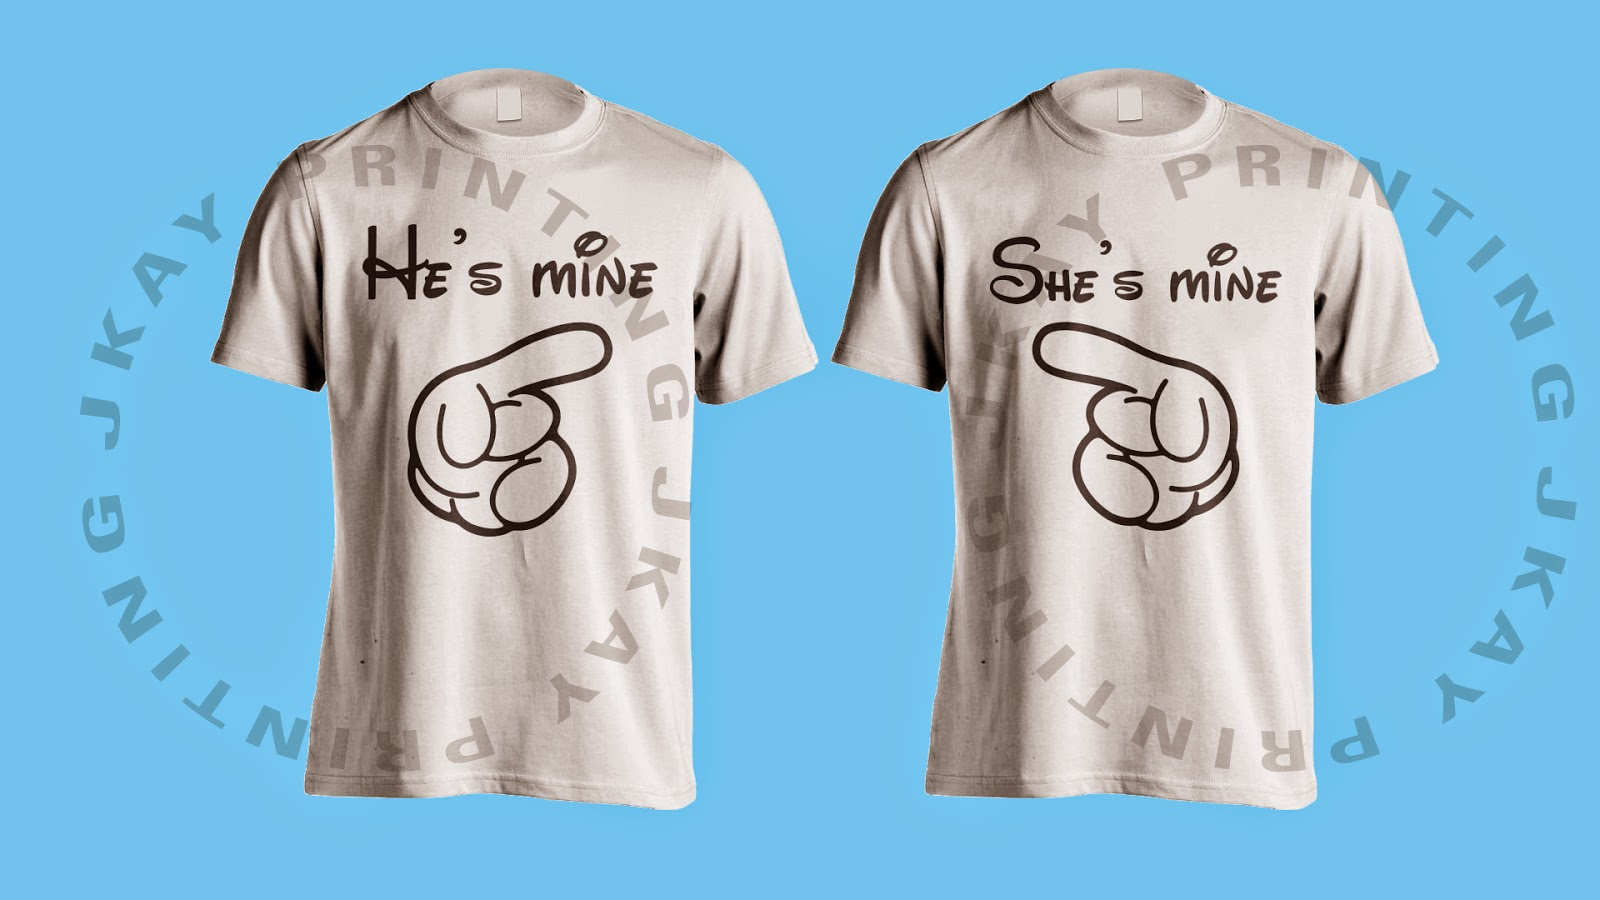 Design custom short sleeve t-shirts with fast turnaround and all inclusive pricing. Featuring high quality t-shirt printing, design ideas, Free Shipping and Live Help.